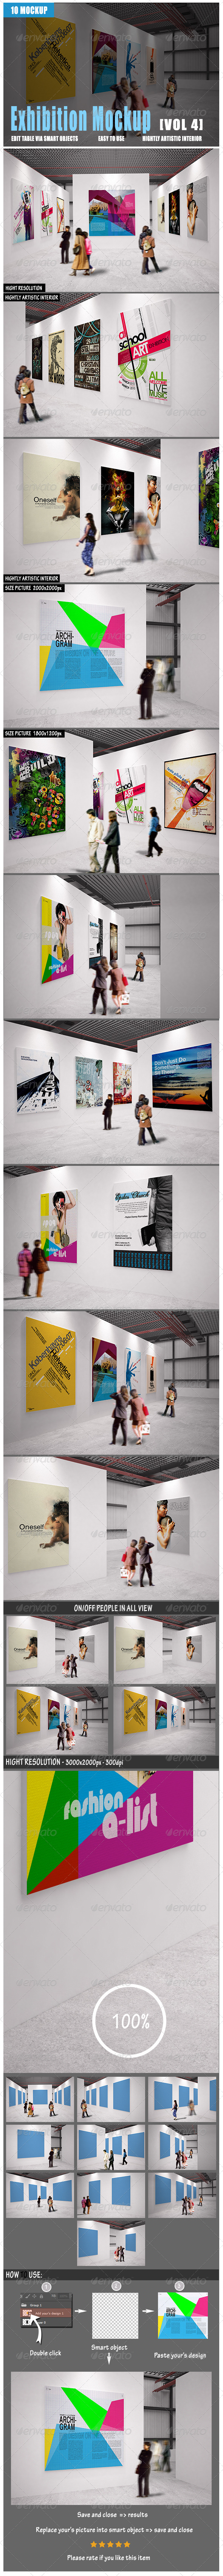 GraphicRiver Exhibition Mockup [vol 4] 8564611